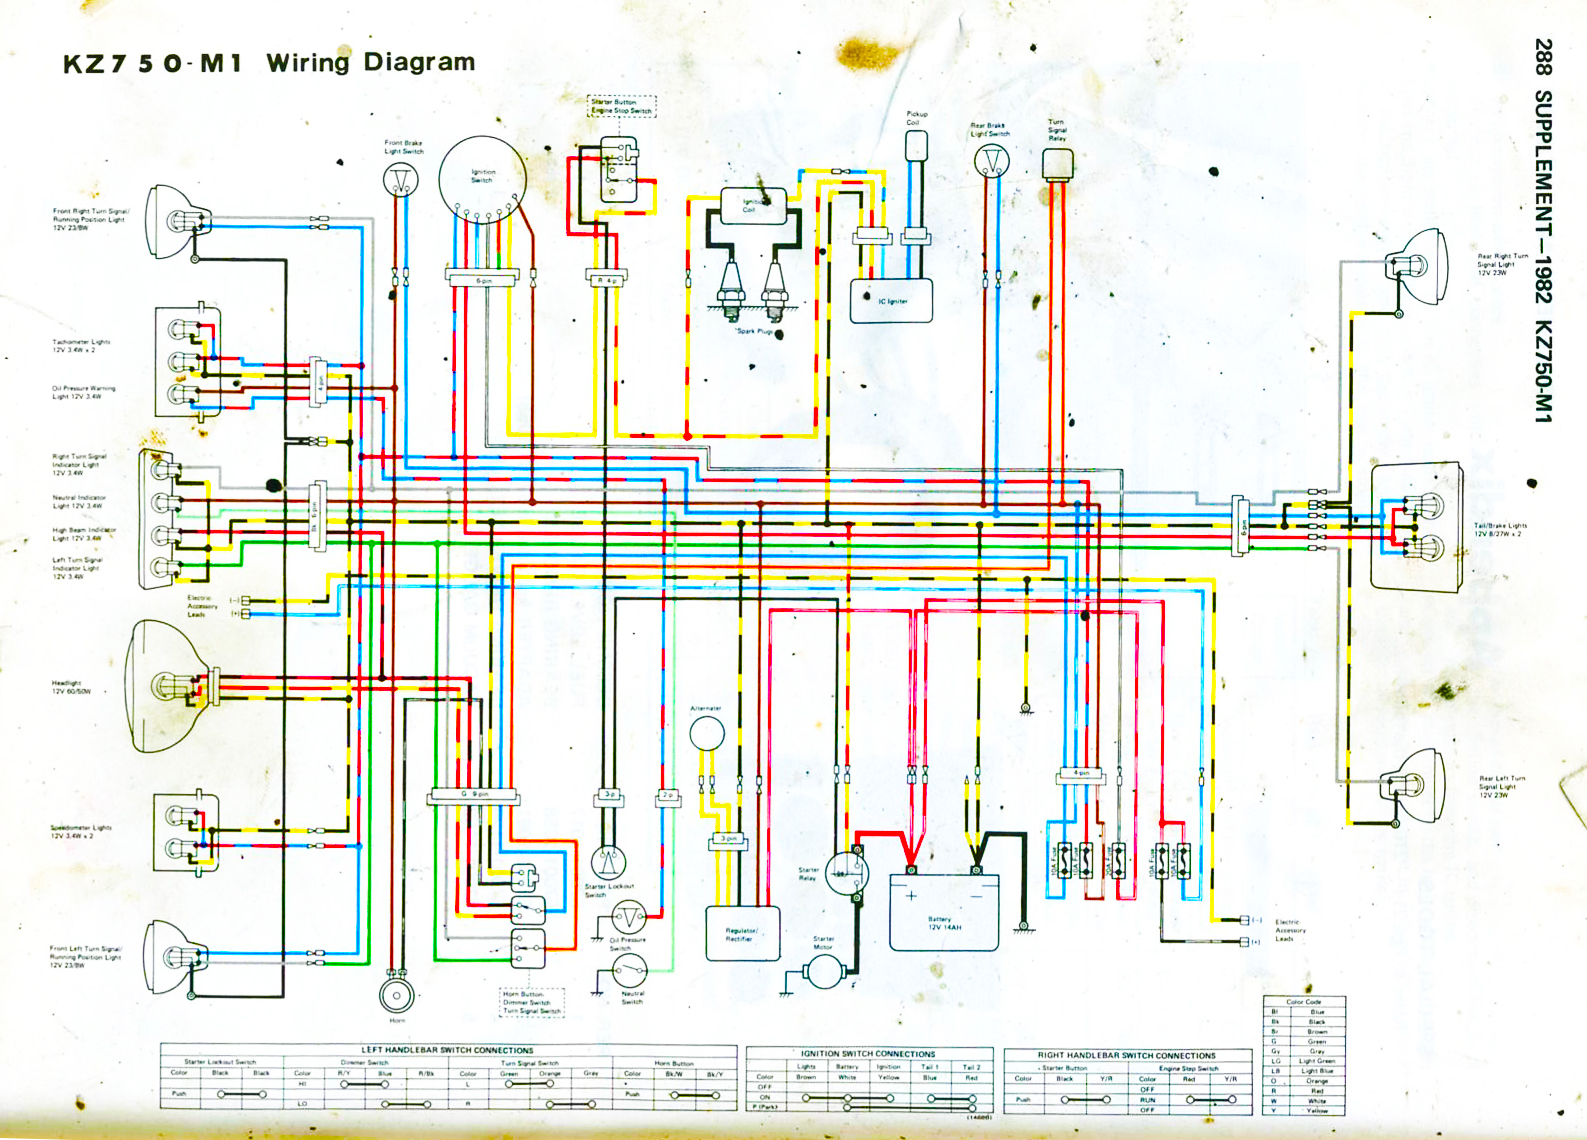 cr42k6e pfv 875 wiring diagram 30 wiring diagram images wiring diagrams gsmx co Refrigeration Compressor Wiring Diagram Refrigeration Compressor Wiring Diagram